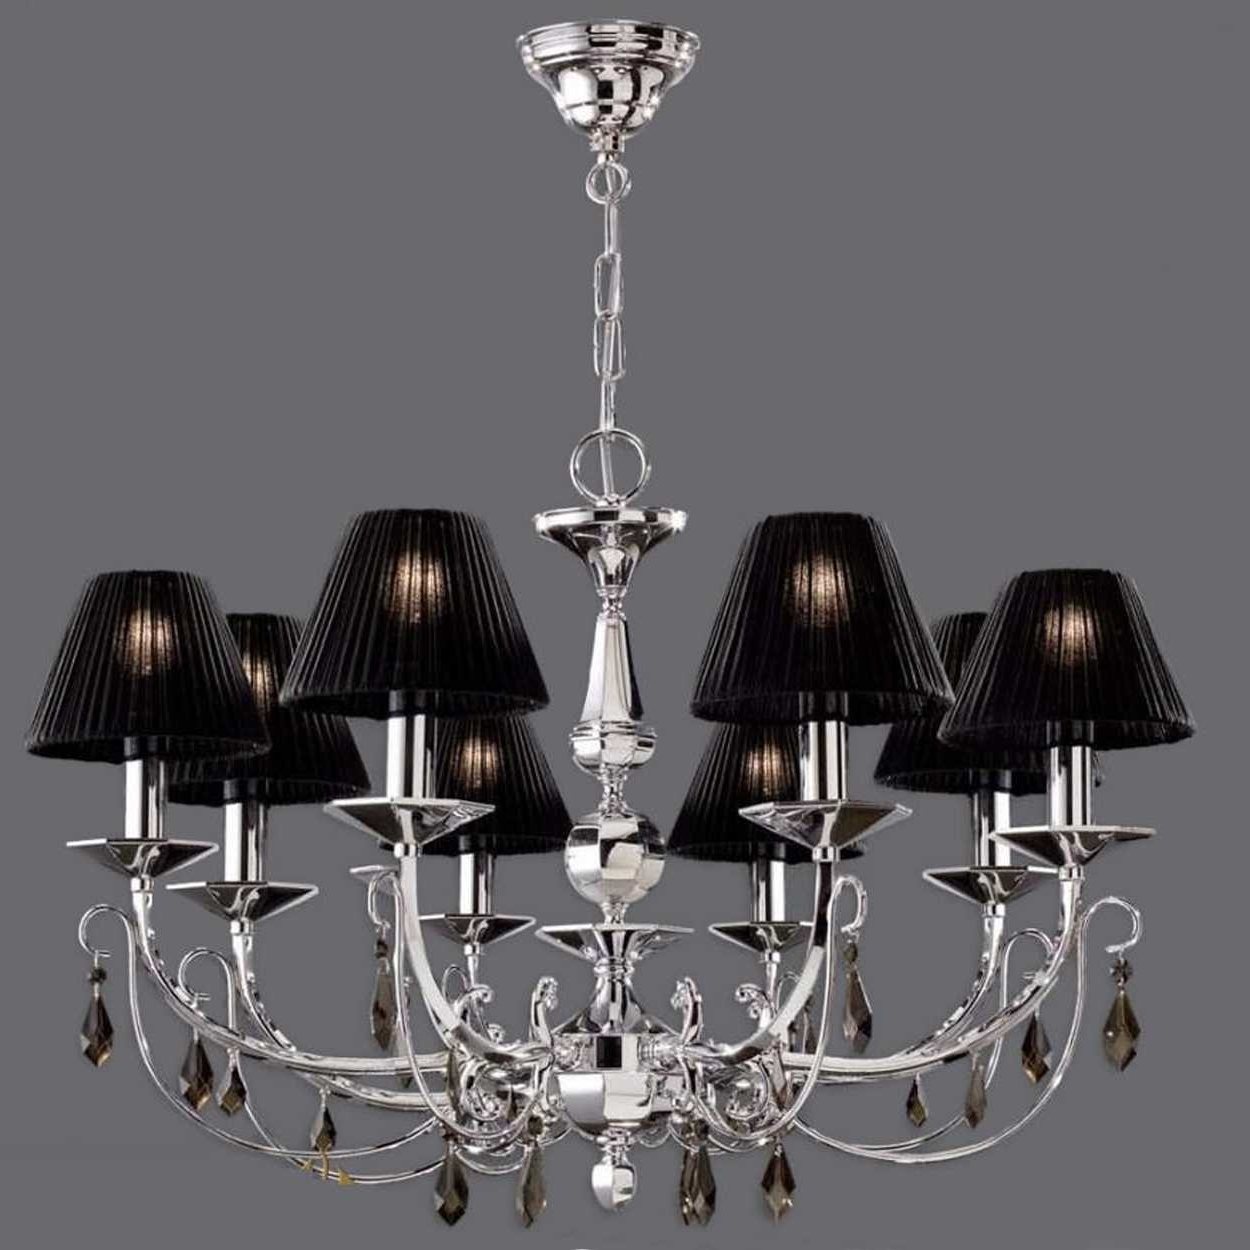 Fashionable Lampshades For Chandeliers In Black Lamp Shade With Crystals Fringed Also Chandeliers Design (View 18 of 20)